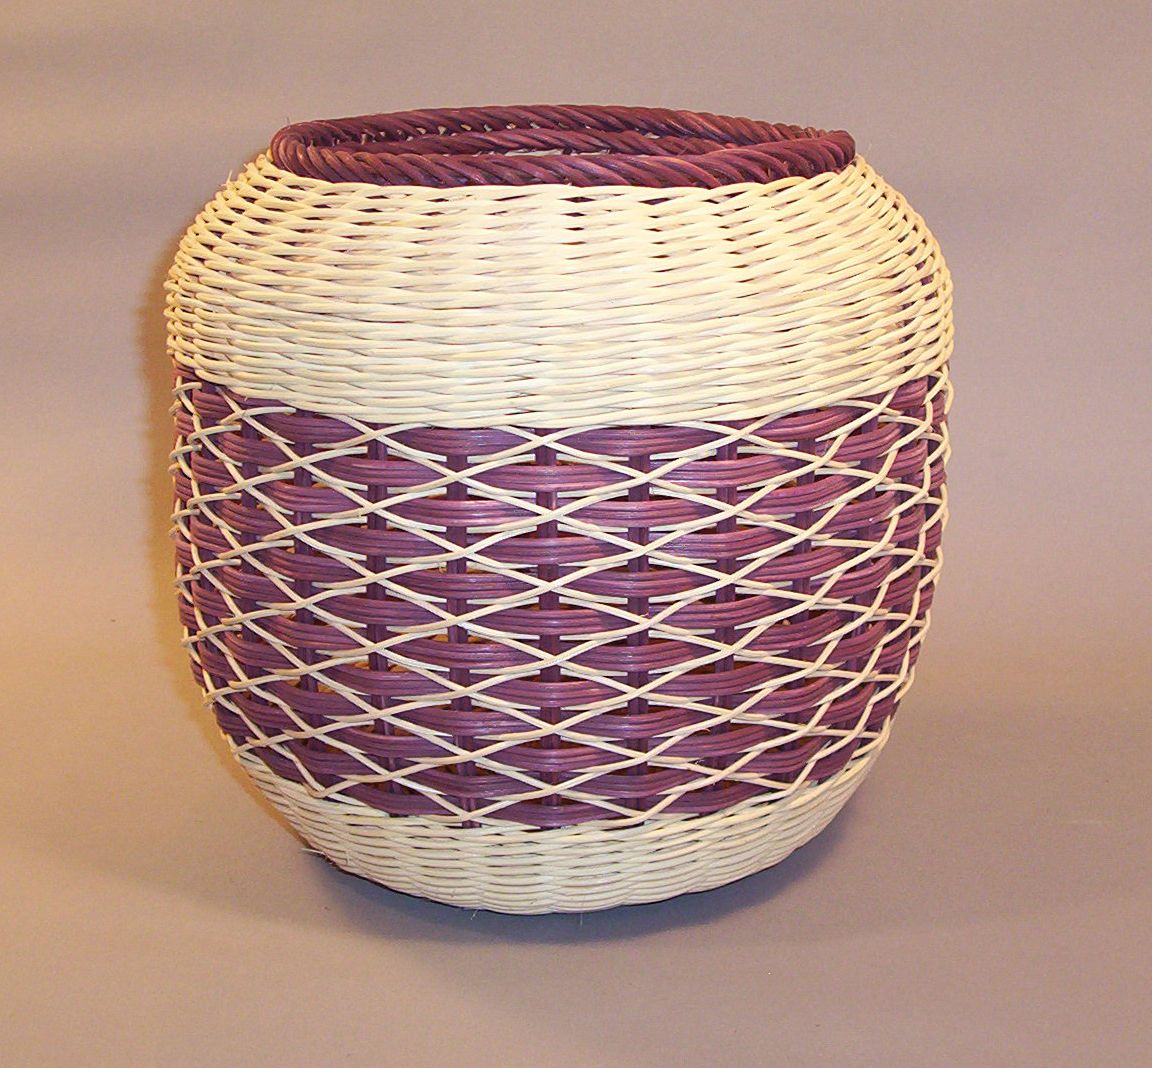 Zakara - Learn from Flo Hoppe at the 2015 Stowe Basketry ...